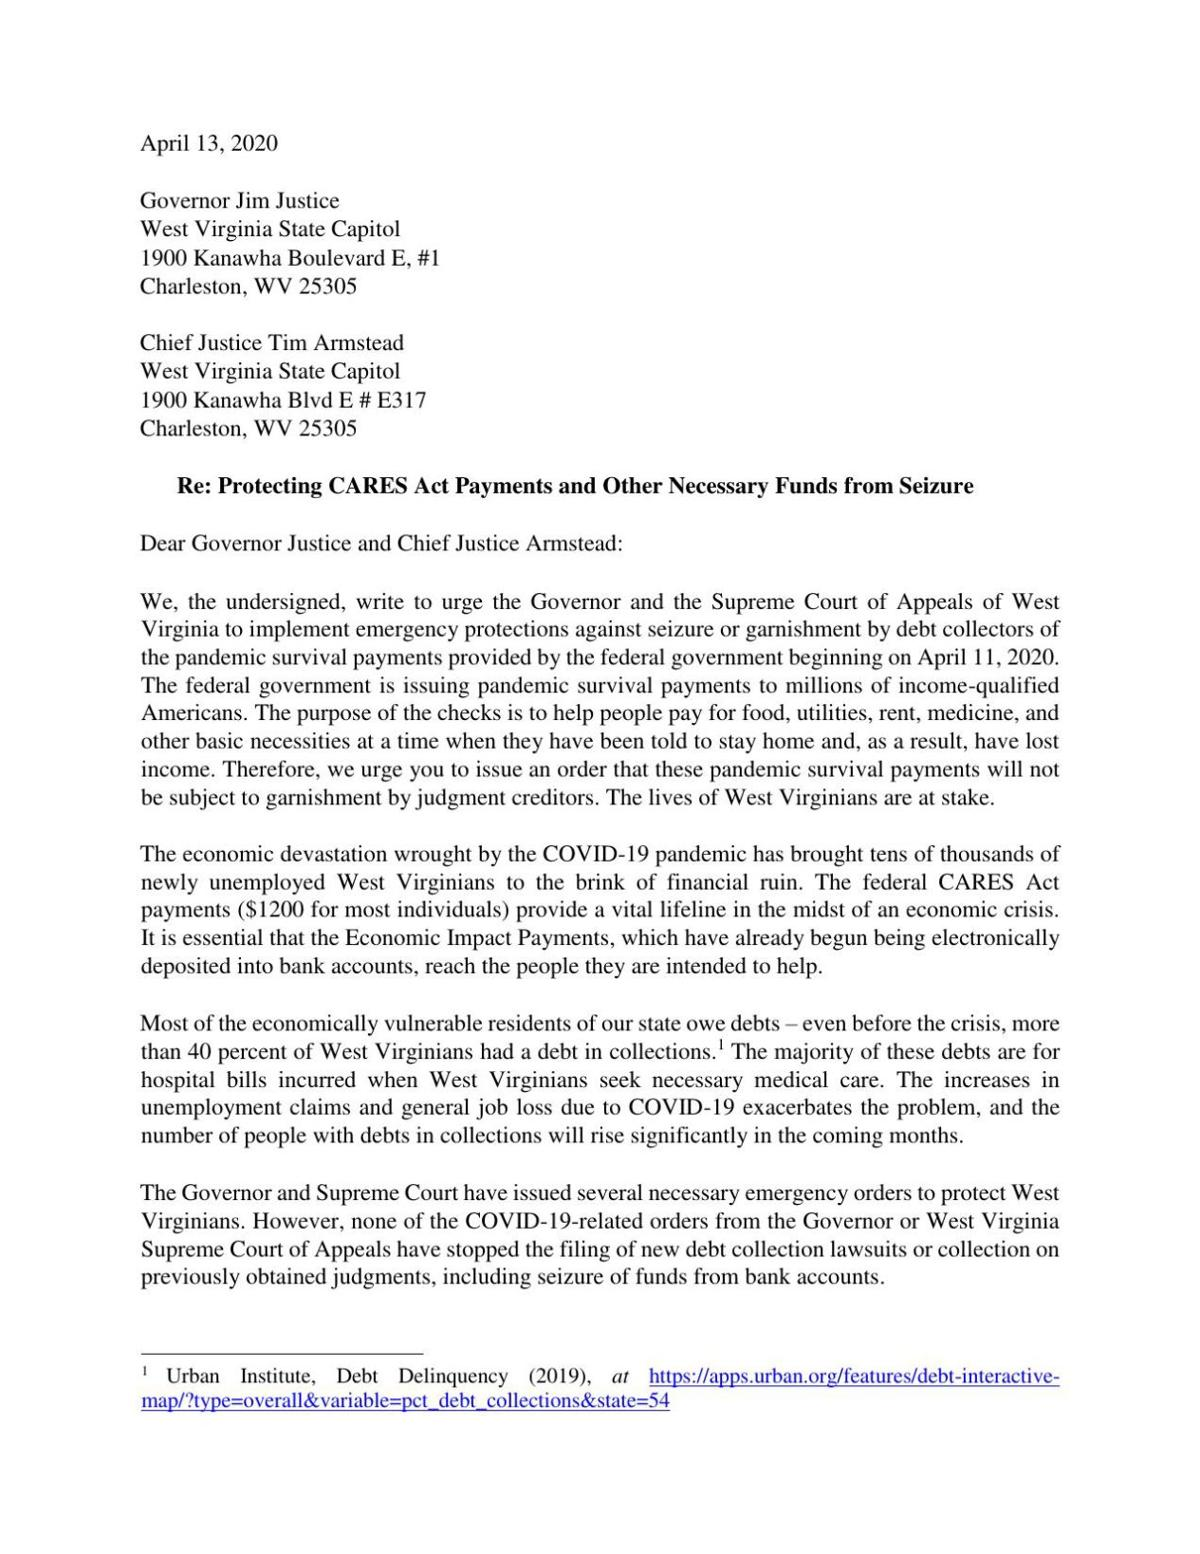 Request for Immediate Action to Protect CARES Act Payments.pdf